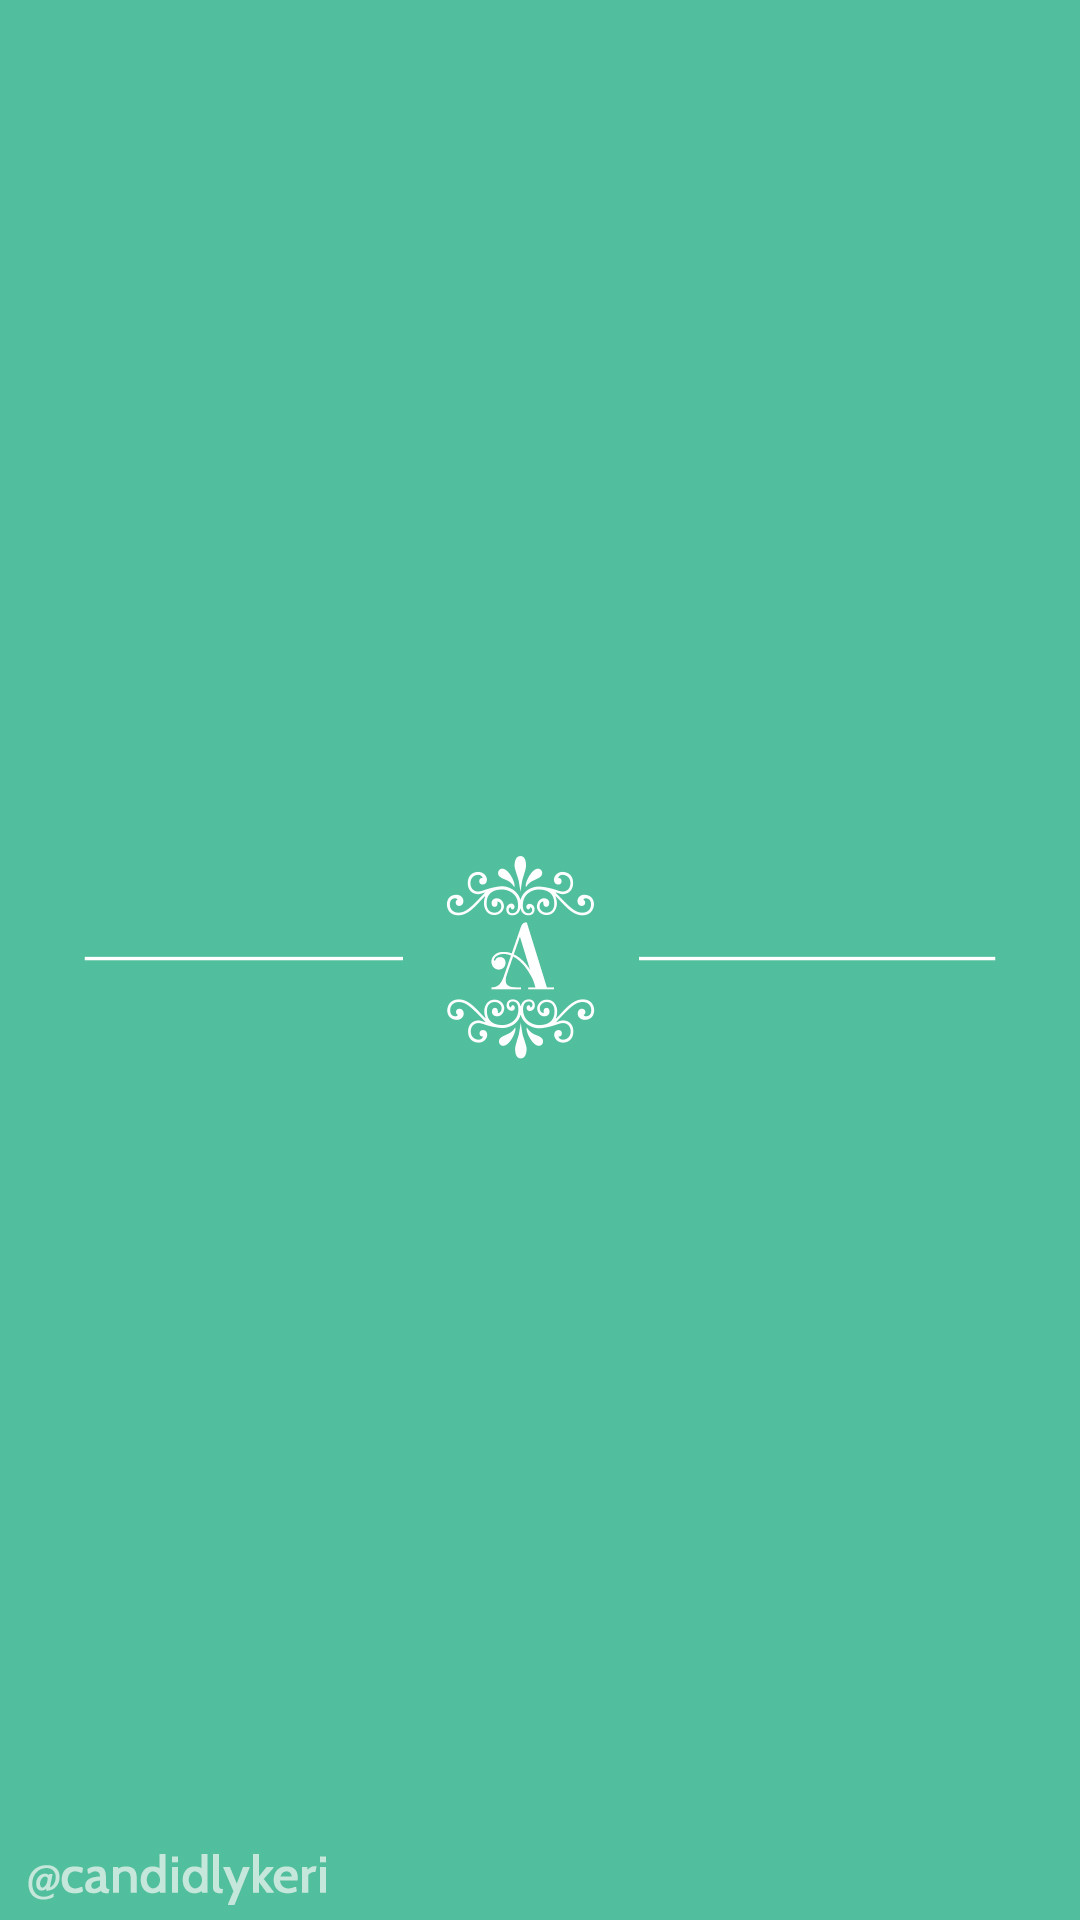 1080x1920 April 2016 Wallpaper Free Download for mobile, iphone and android, A  Monogram with mint